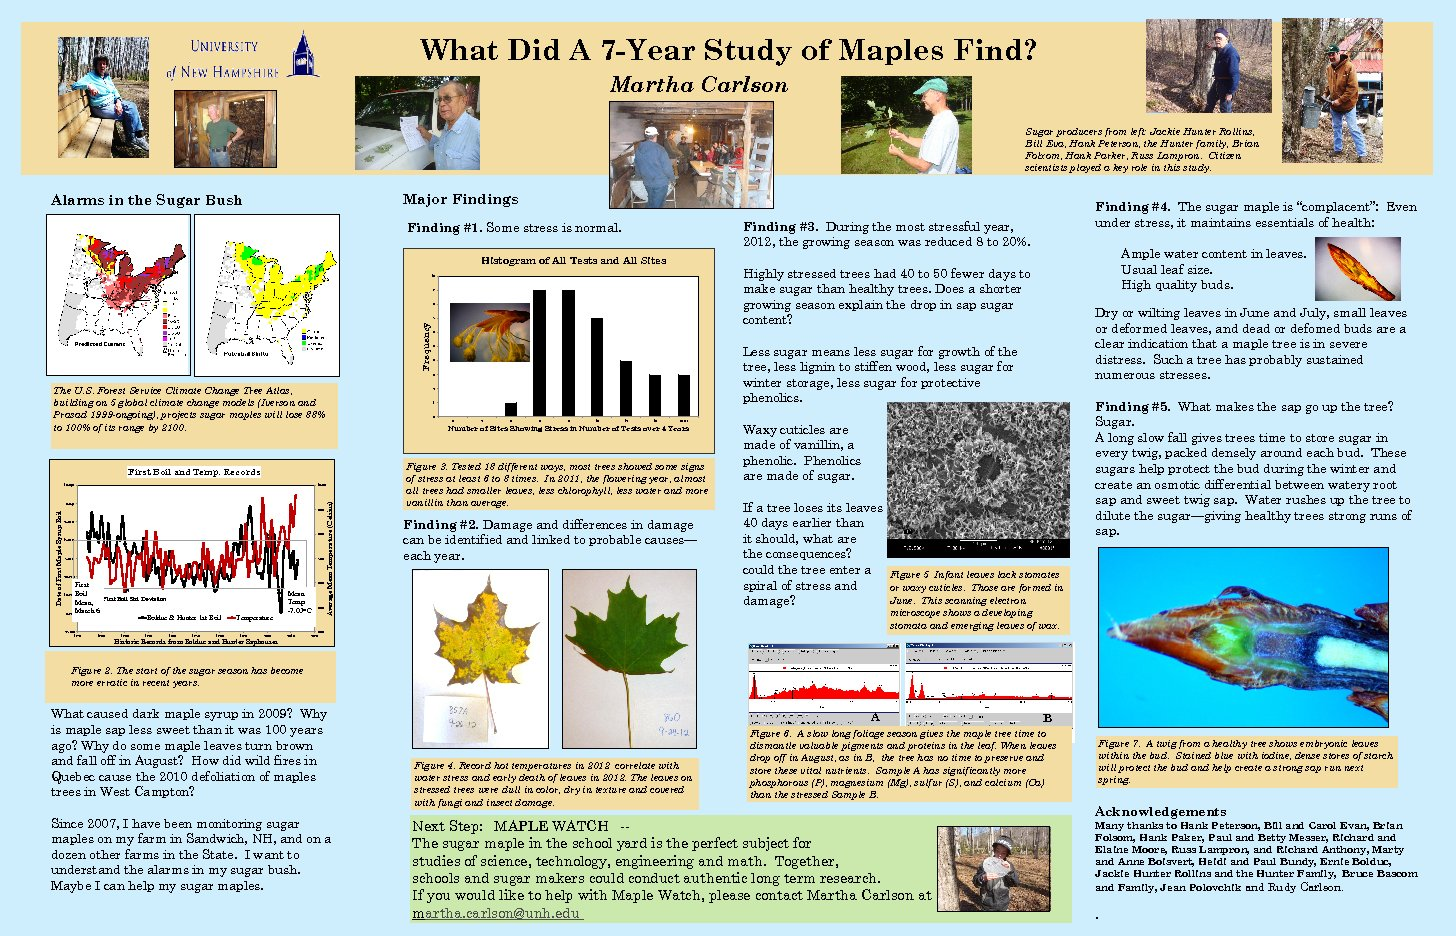 Findings Of A 7-Year Maple Study by mrg39